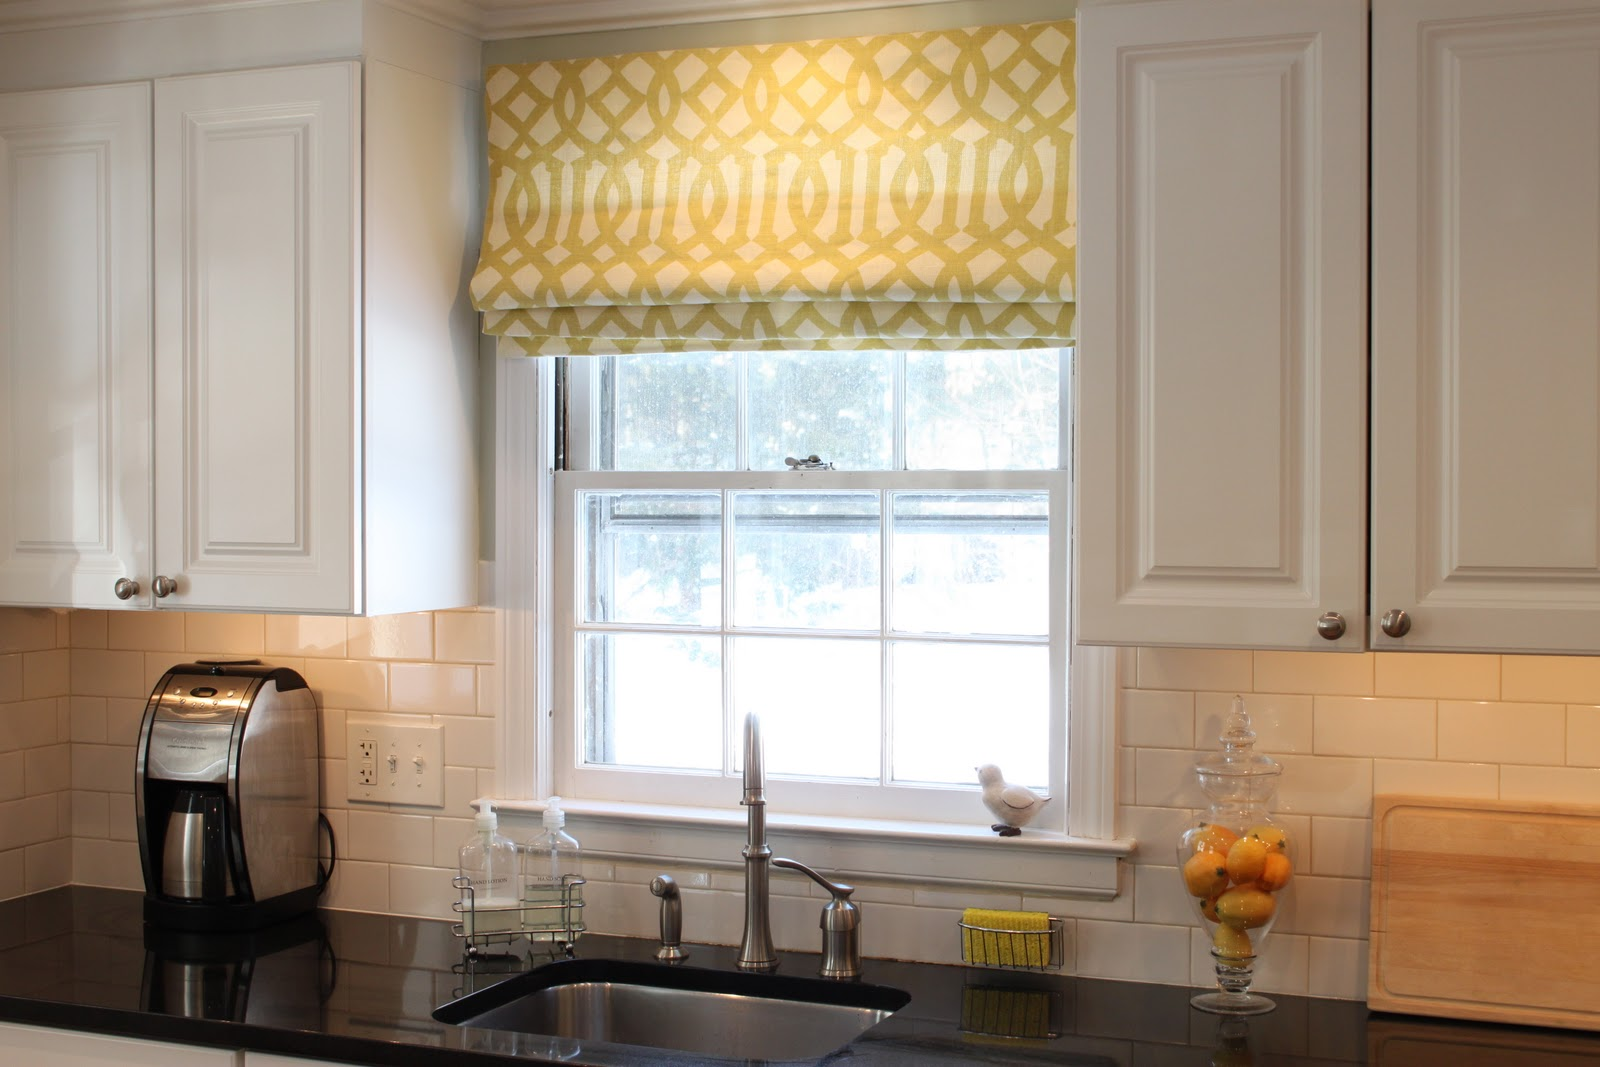 What A Pane: Getting More Light Out Of A Small Window